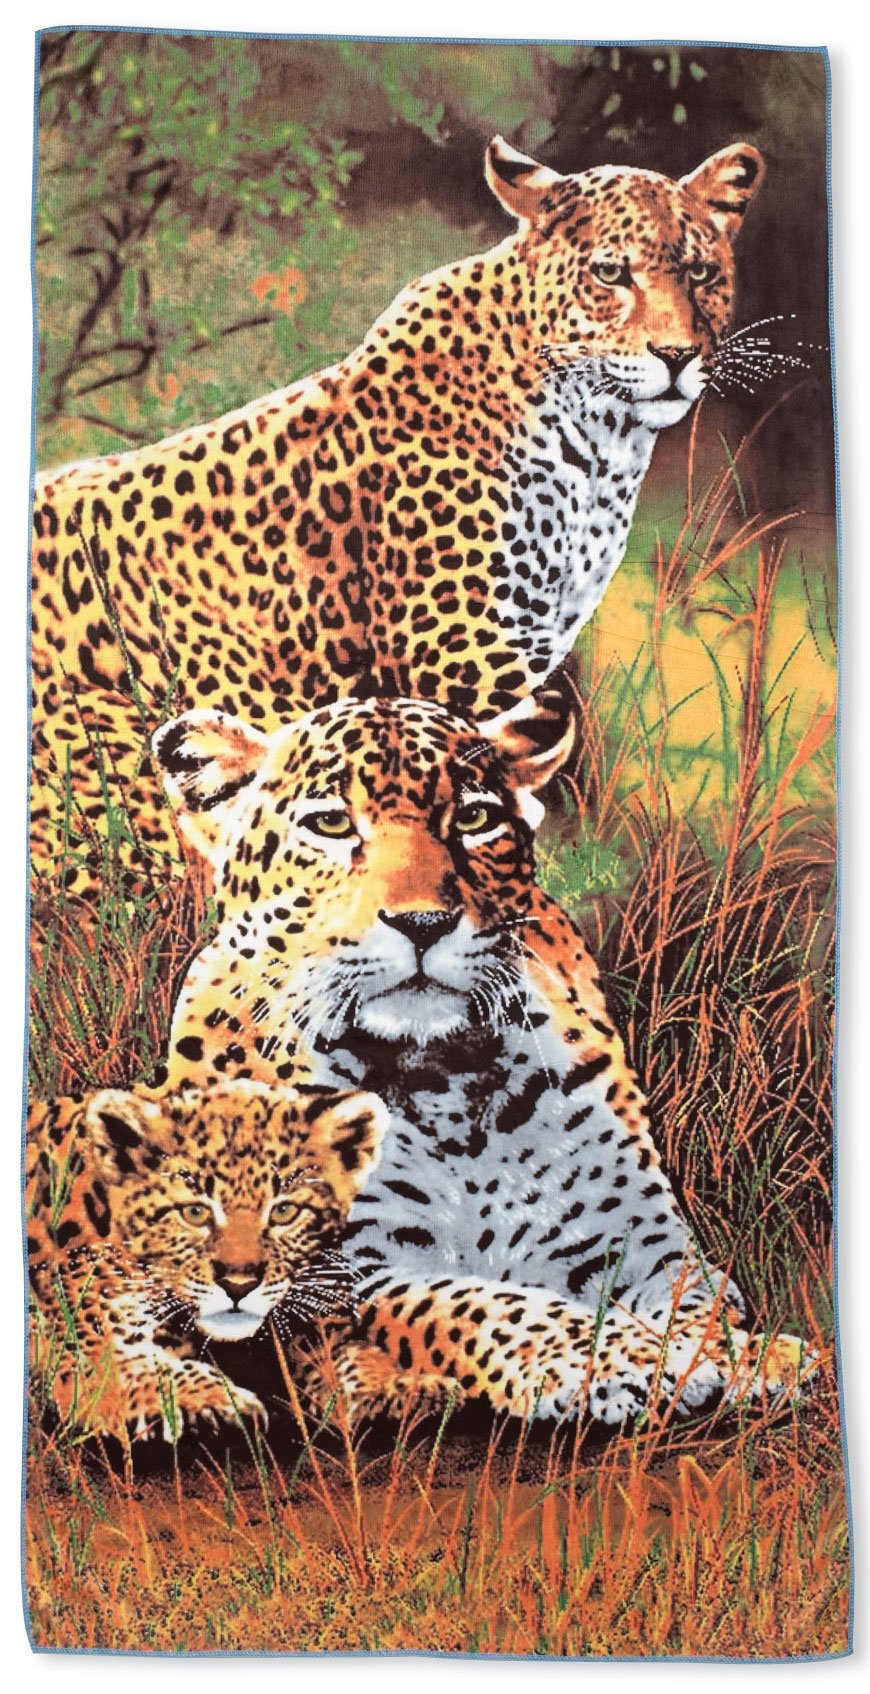 Beach Towel - Leopard Print Towel, Large, Soft, Absorbent, Fast Drying and Lightweight Microfiber, 28'' x 55''